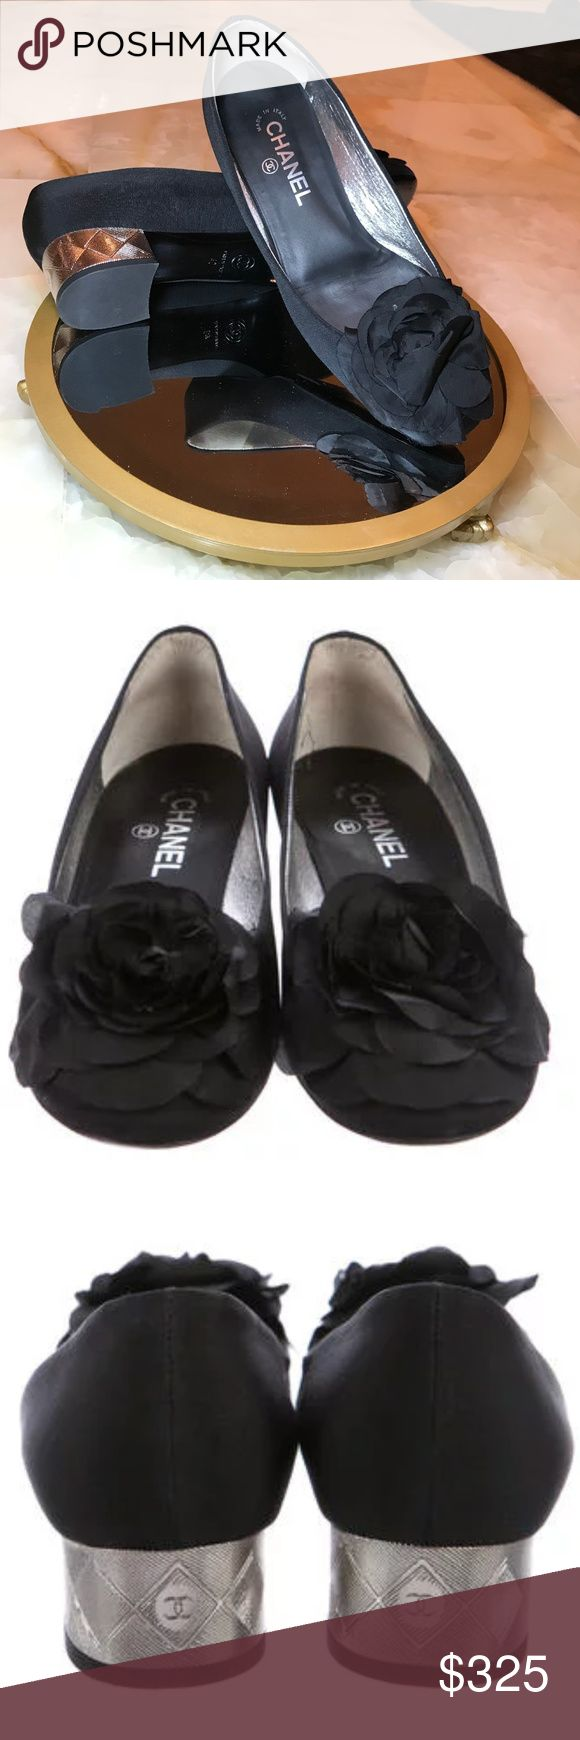 **Beautiful Chanel Pumps** From the Pre-Fall 2010 Collection. Black canvas Chanel pumps with tonal stitching, square toes, camellia accent at tops and mirrored textured at heels. Includes original dust bag.  Shoe says EU 40 but fits like a 9/9.5. CHANEL Shoes